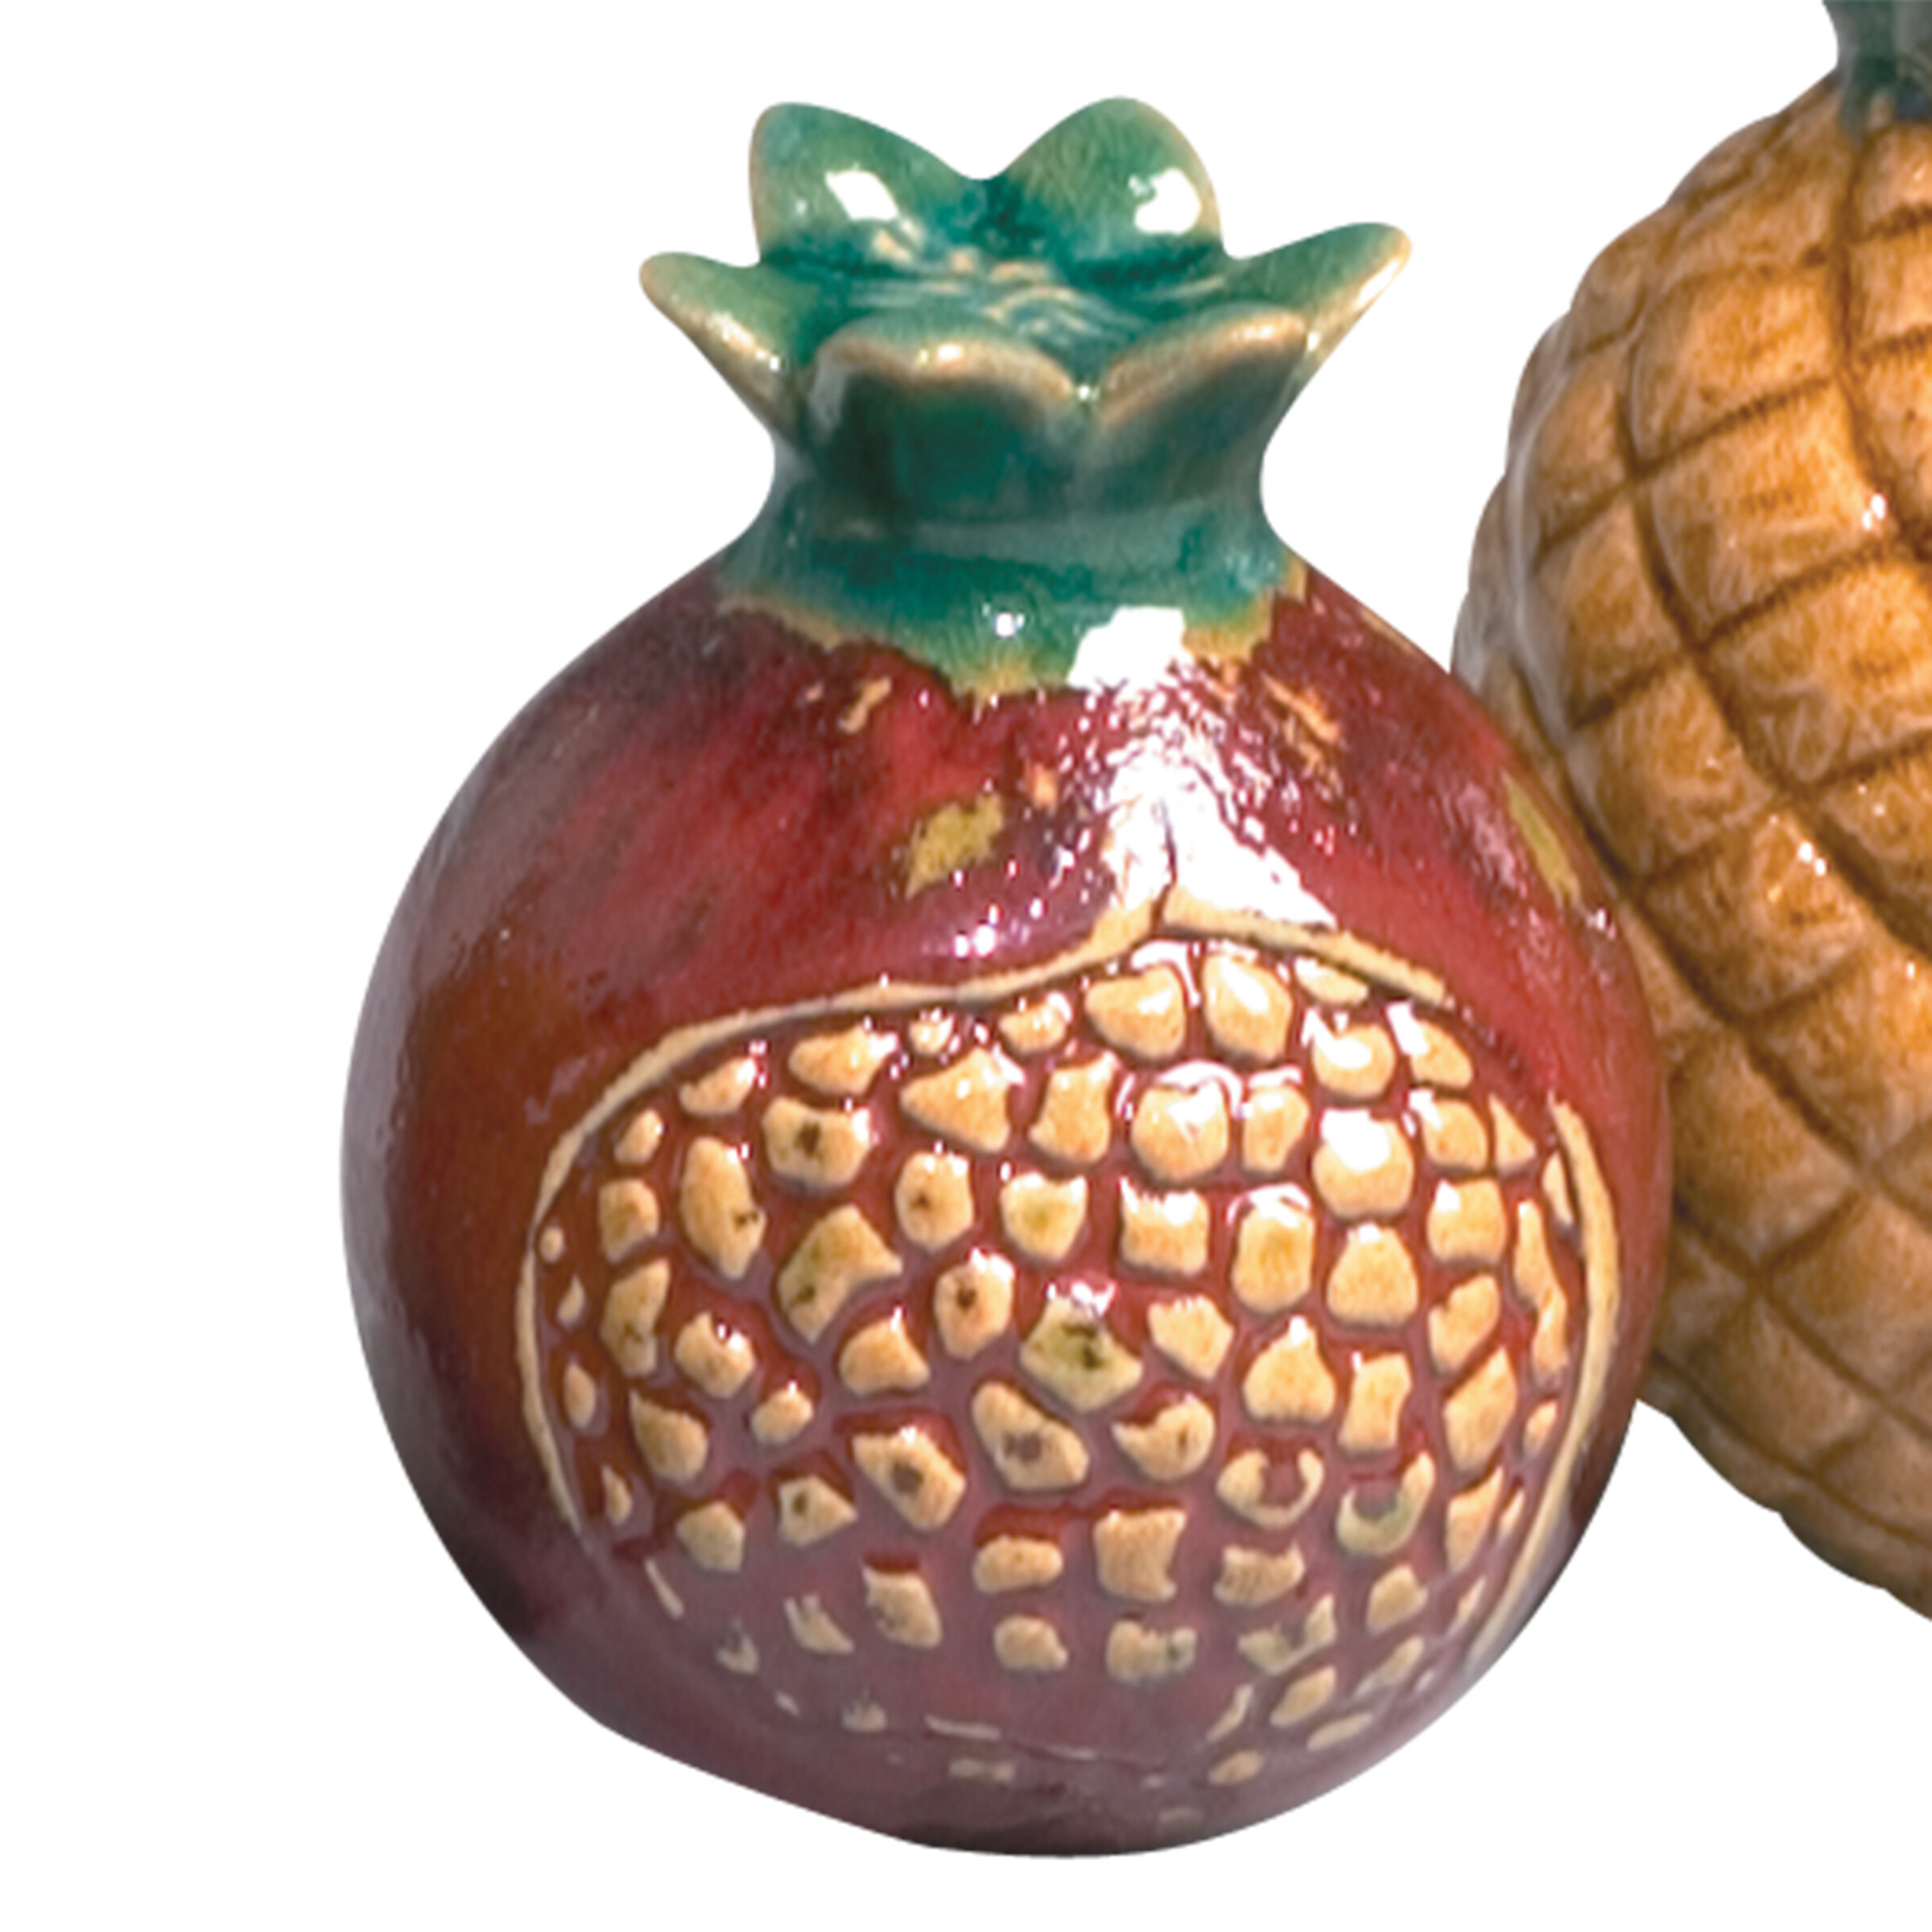 Ceramic Mixed Fruit Decorative Objects You Ll Love In 2021 Wayfair